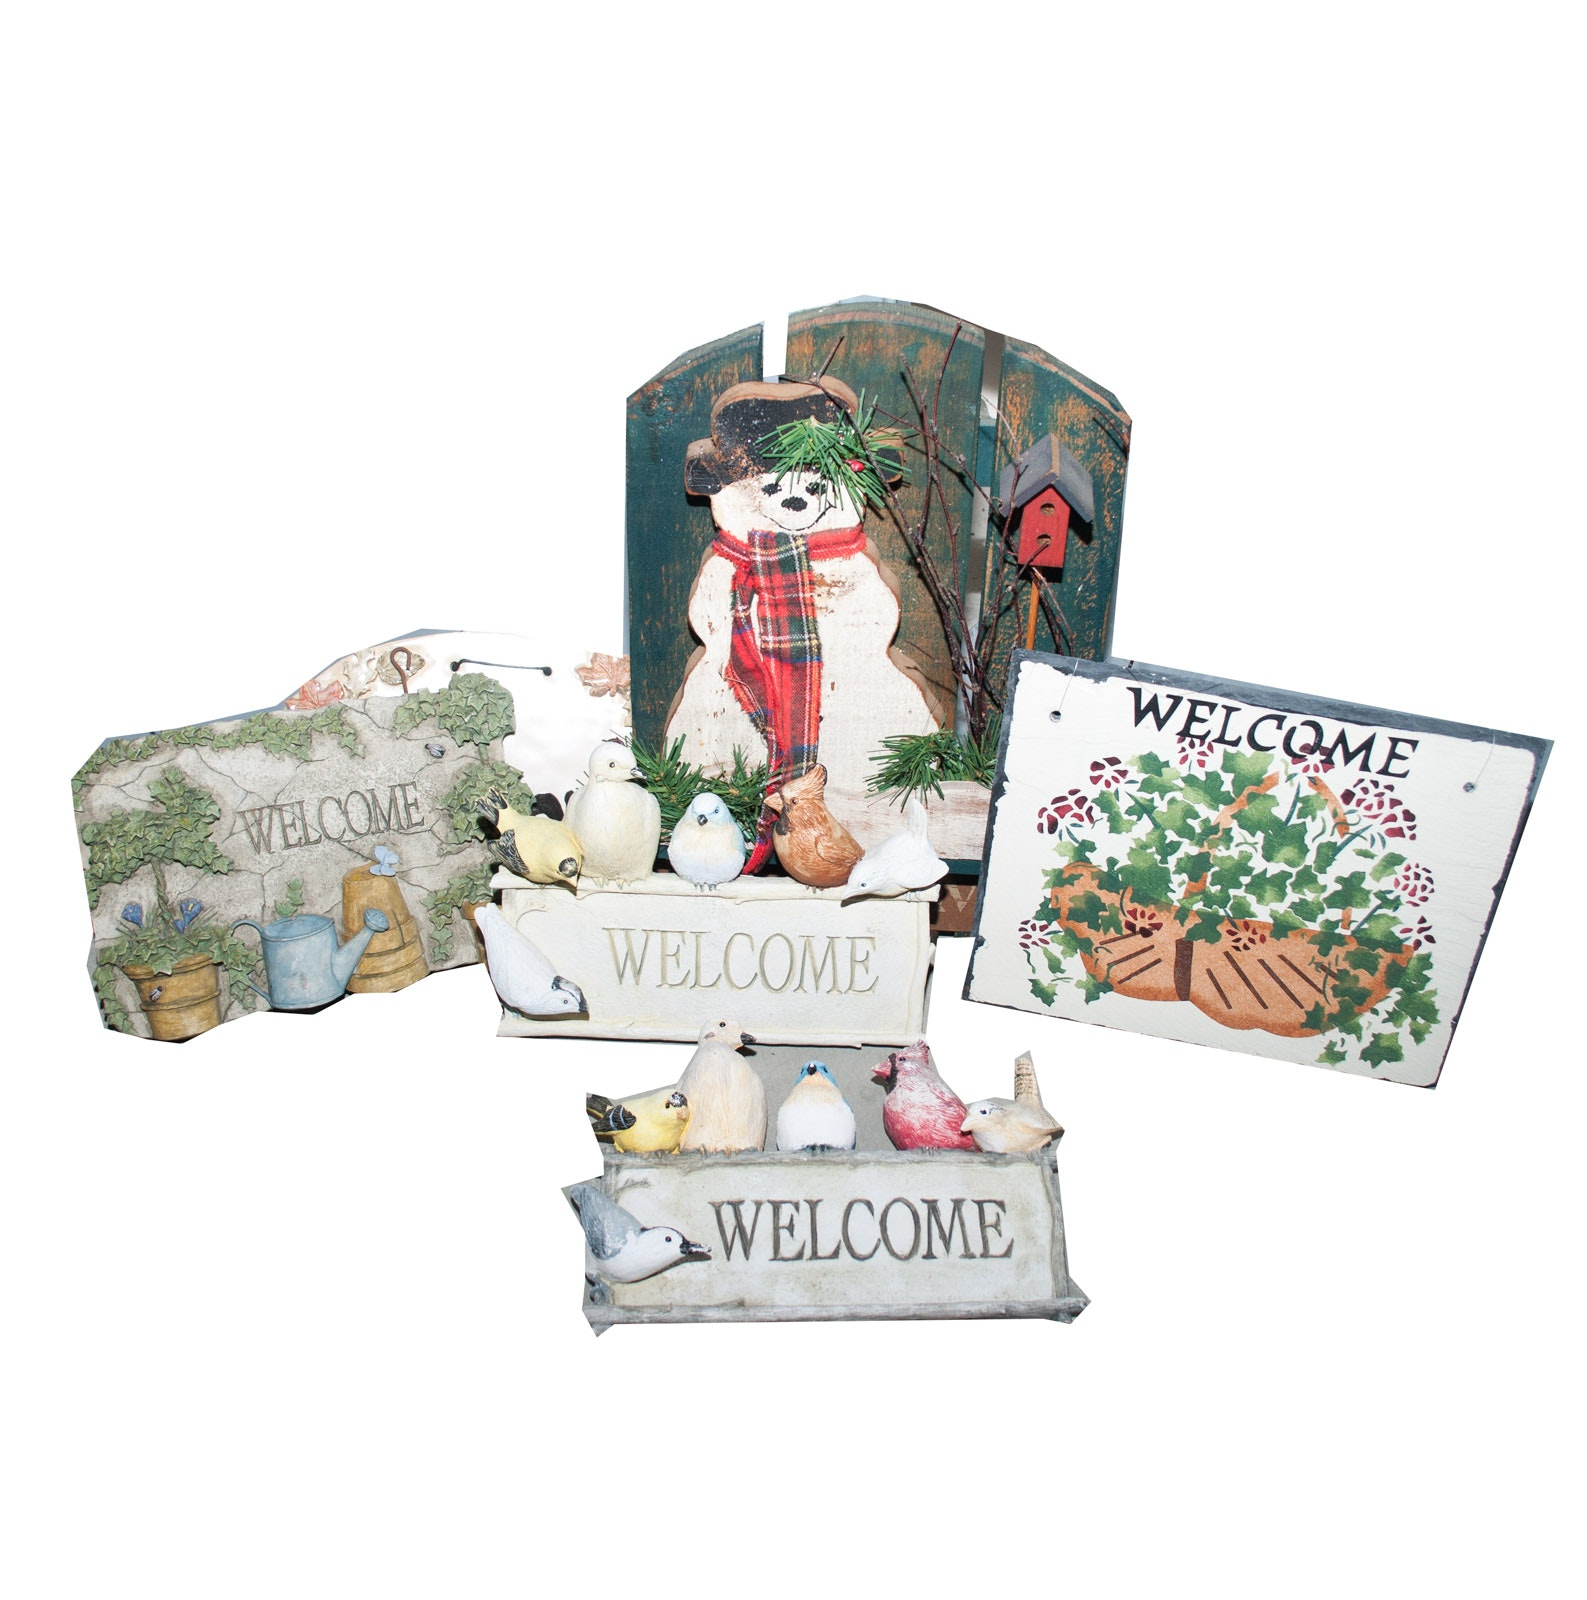 Assortment of Welcome Wall Decor